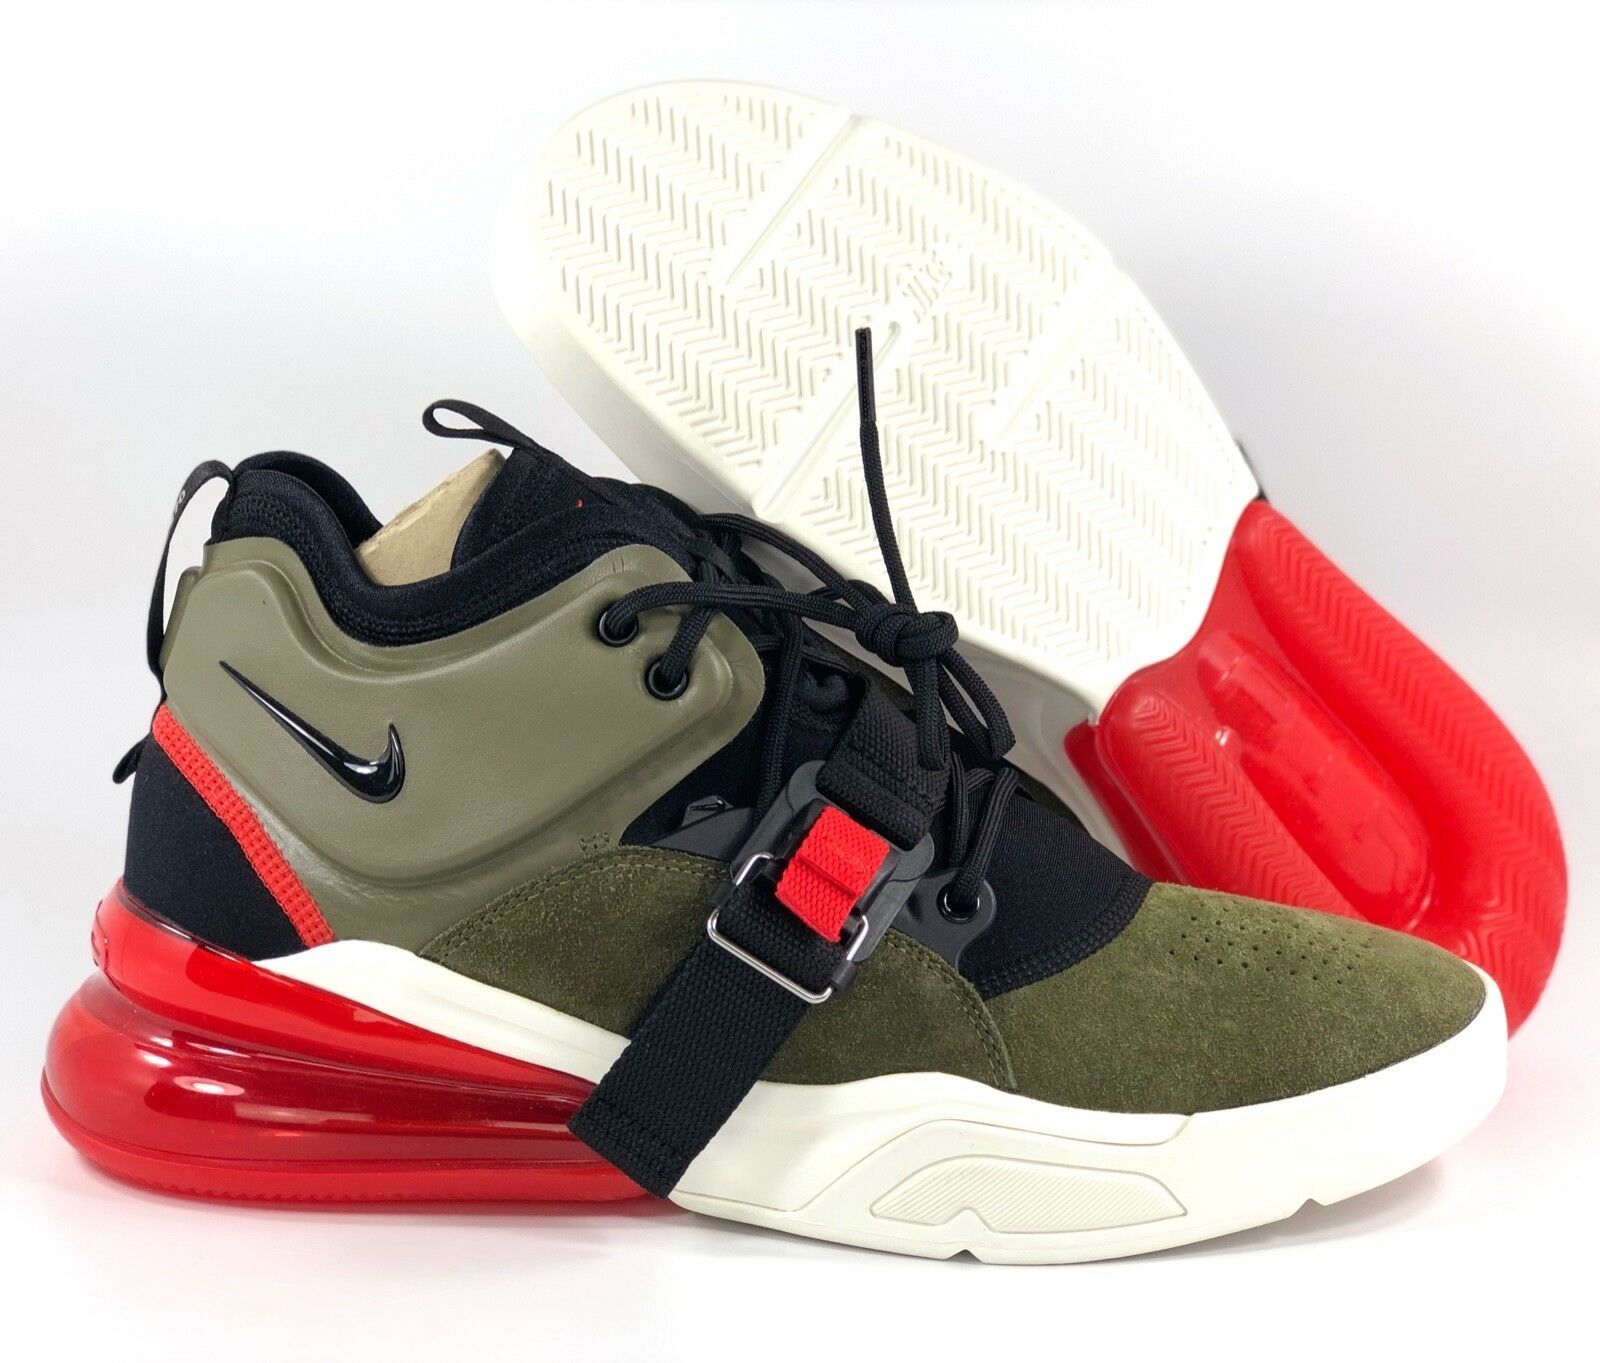 d37377bec6 Nike Air Force 270 Medium Olive Green Black Red White AH6772-200 ...